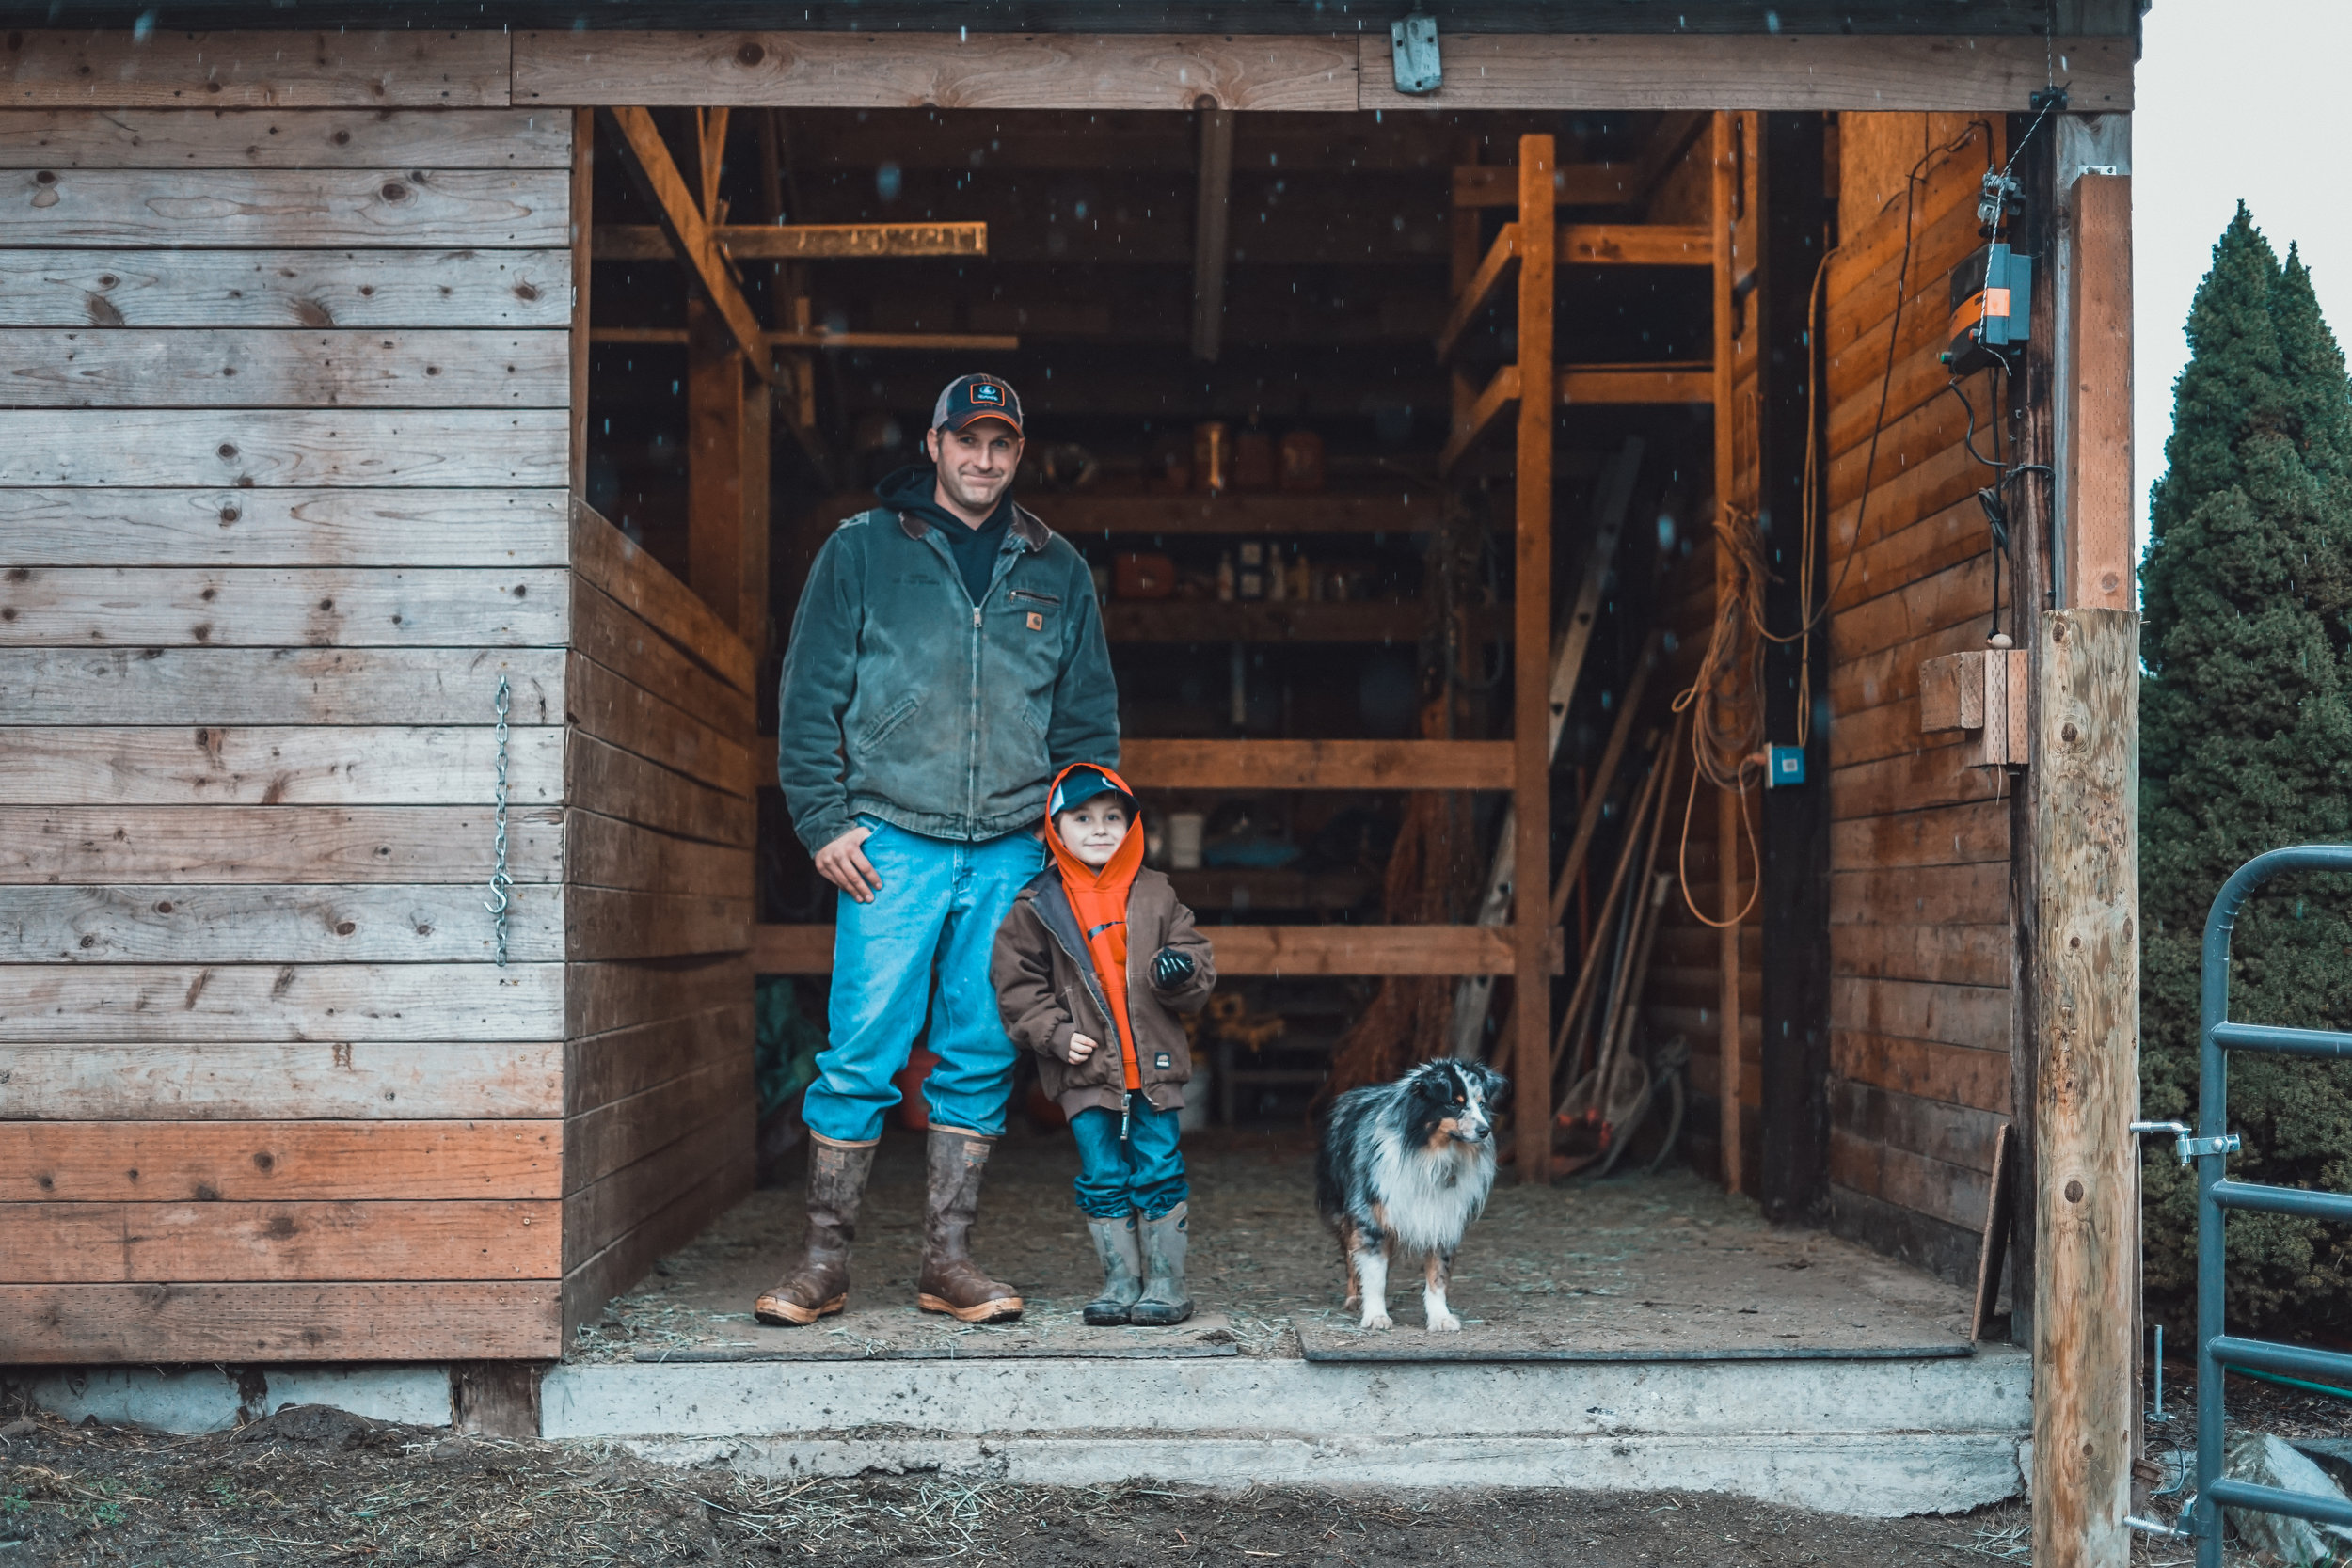 Tory Kowalczyk with his son and dog on their farm in Mount Vernon. Photo by Courtney Baxter / TNC